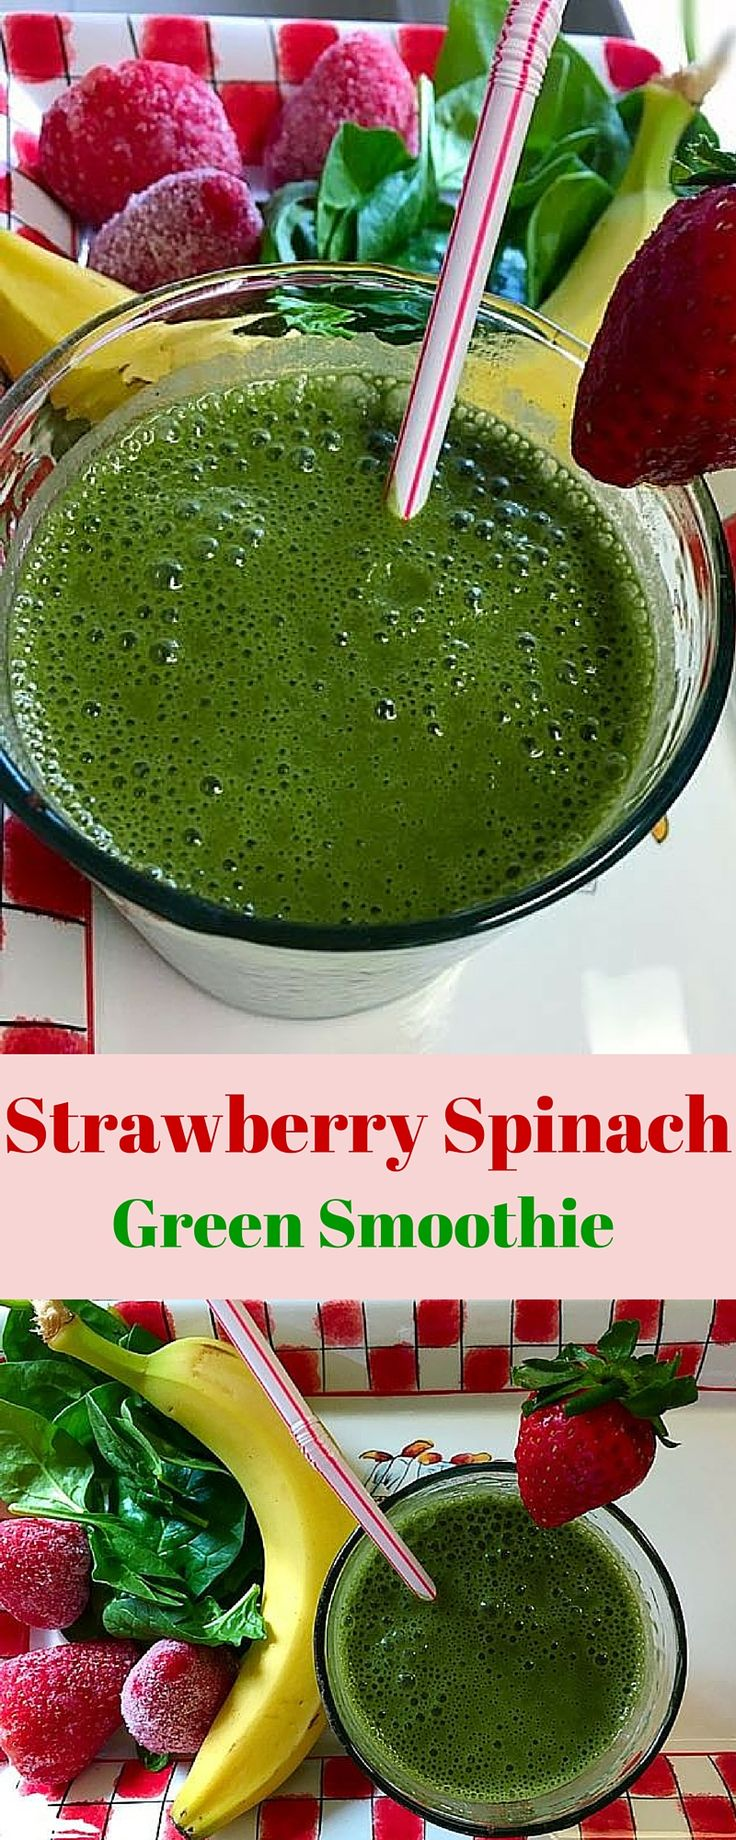 This smoothie is packed with vitamin C, folate and carotene which boost the immune system, protect against cancer and help maintain artery health.  Its vitamin K helps to boost bone strength and density. The fiber in spinach and strawberries aids the digestive system and minimizes constipation. bluelightwave.com